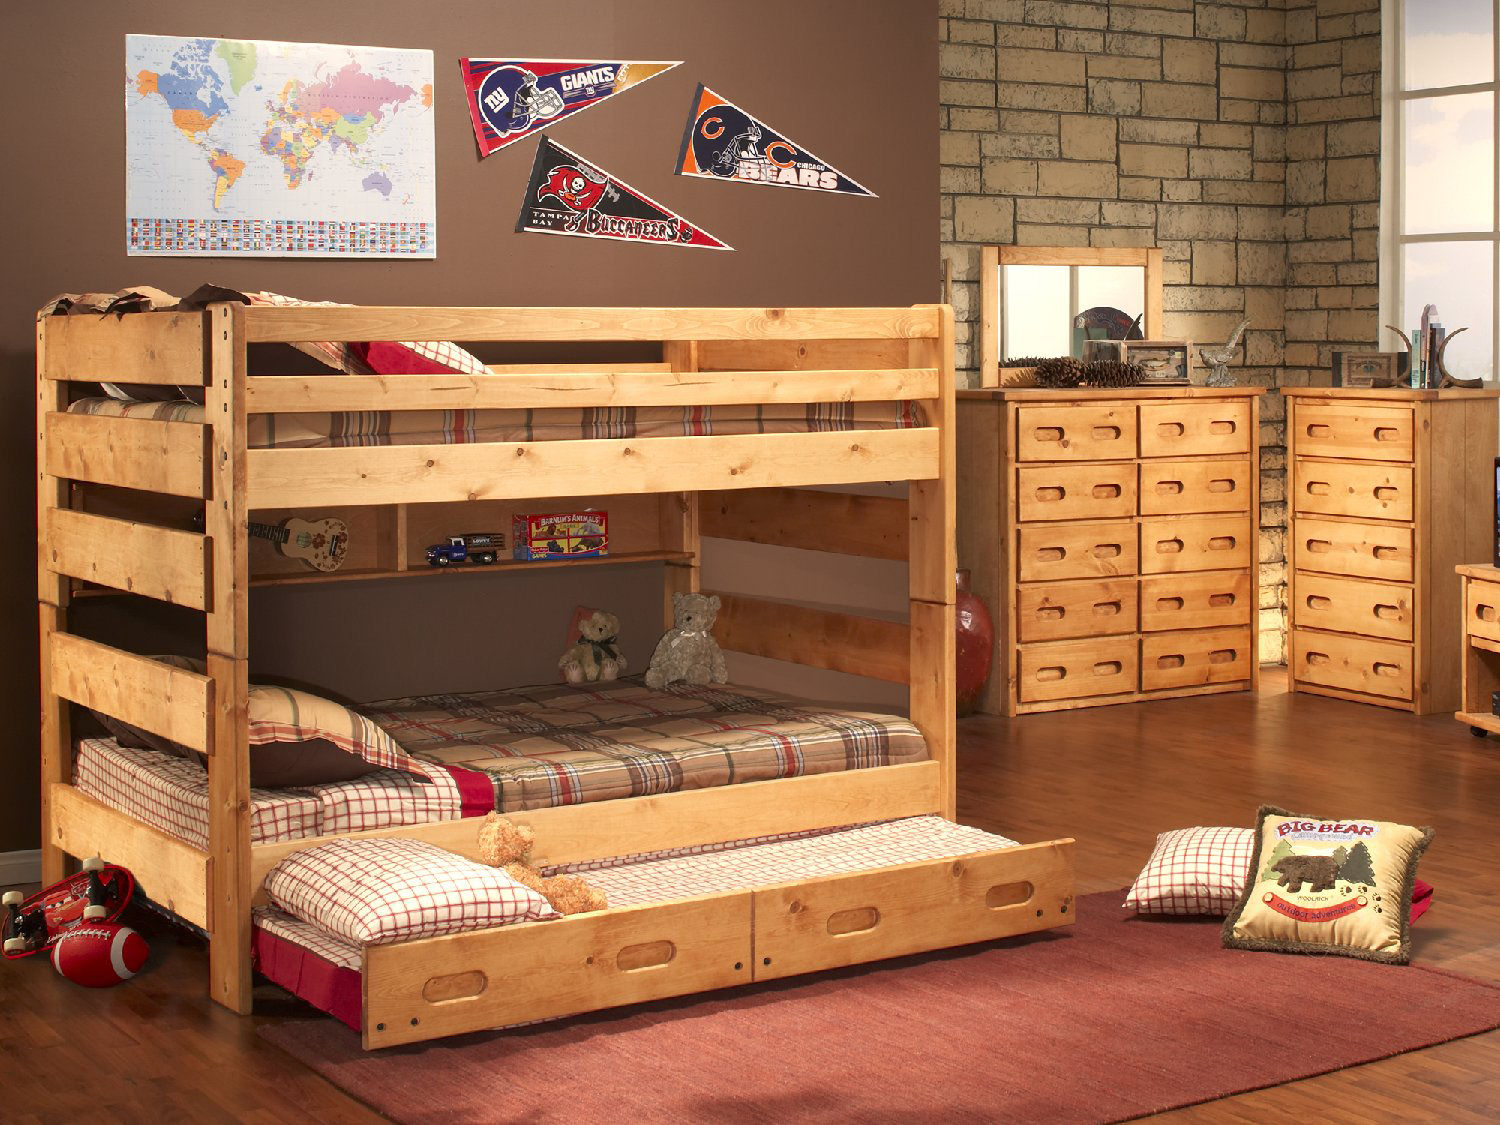 Sleep Concepts Mattress Futon Factory Amish Rustics: Big Sky Full Over Full Bunk Bed With Trundle